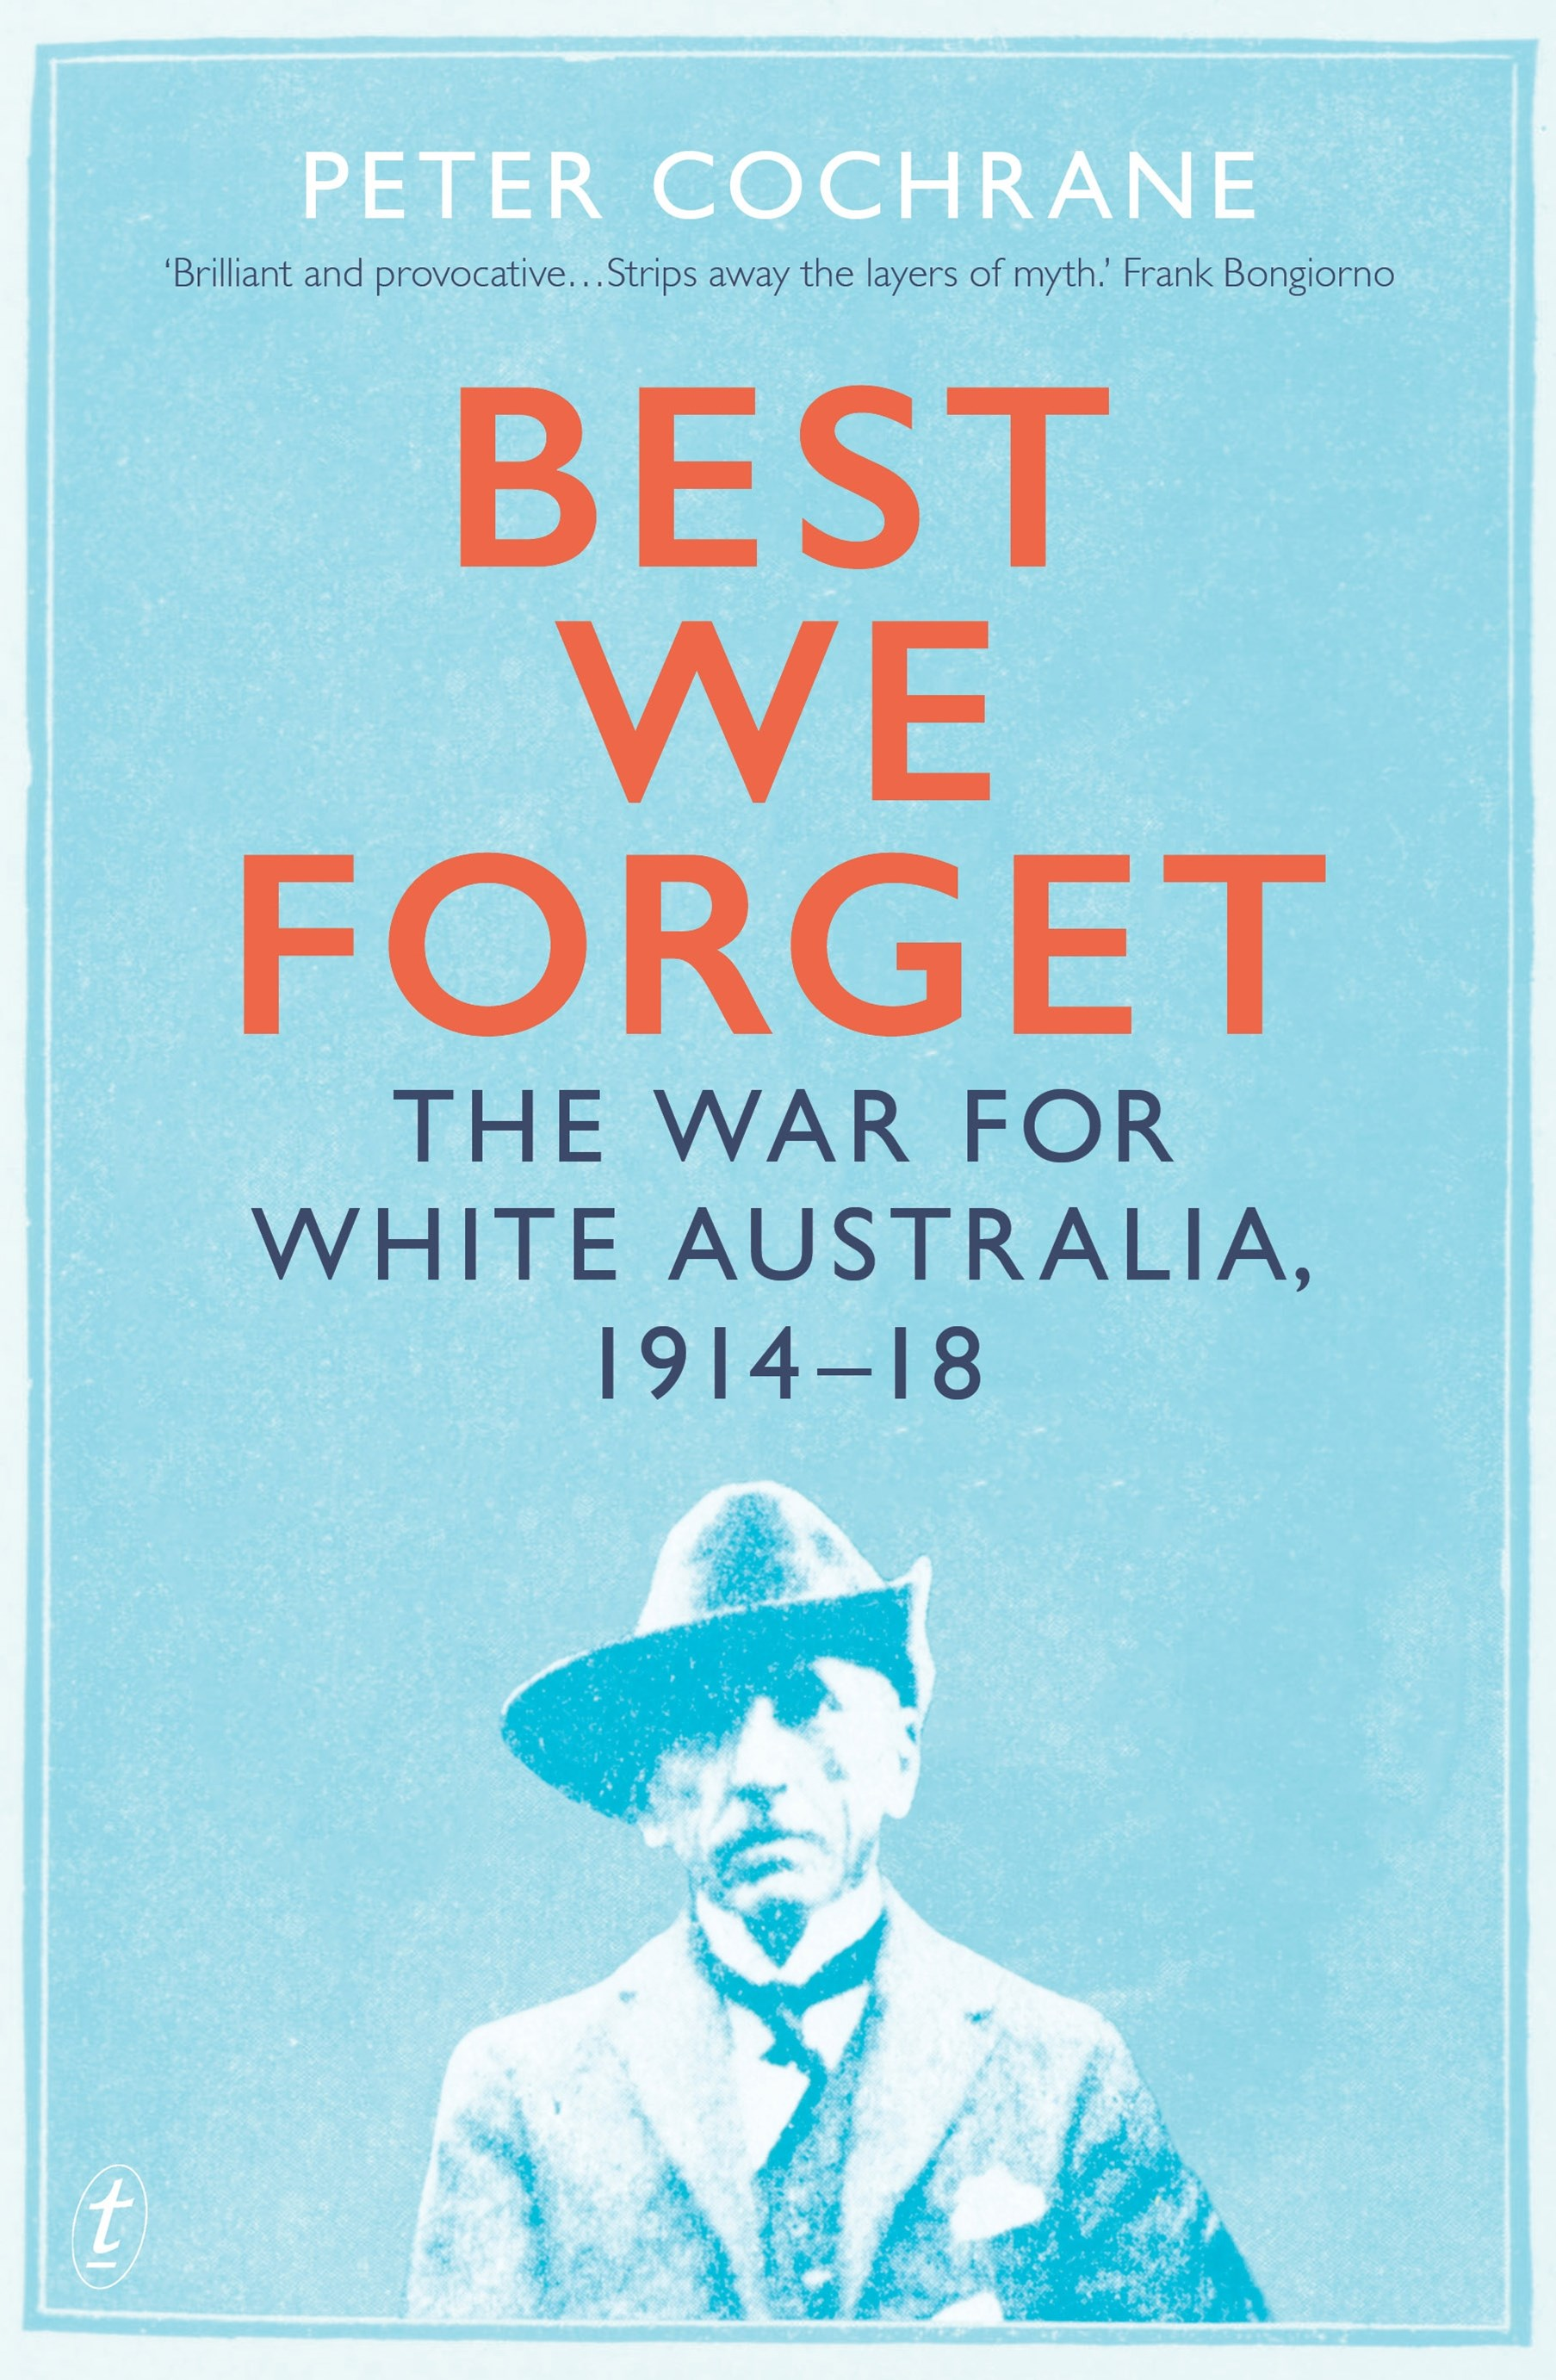 Best We Forget: The War for White Australia, 1914-18